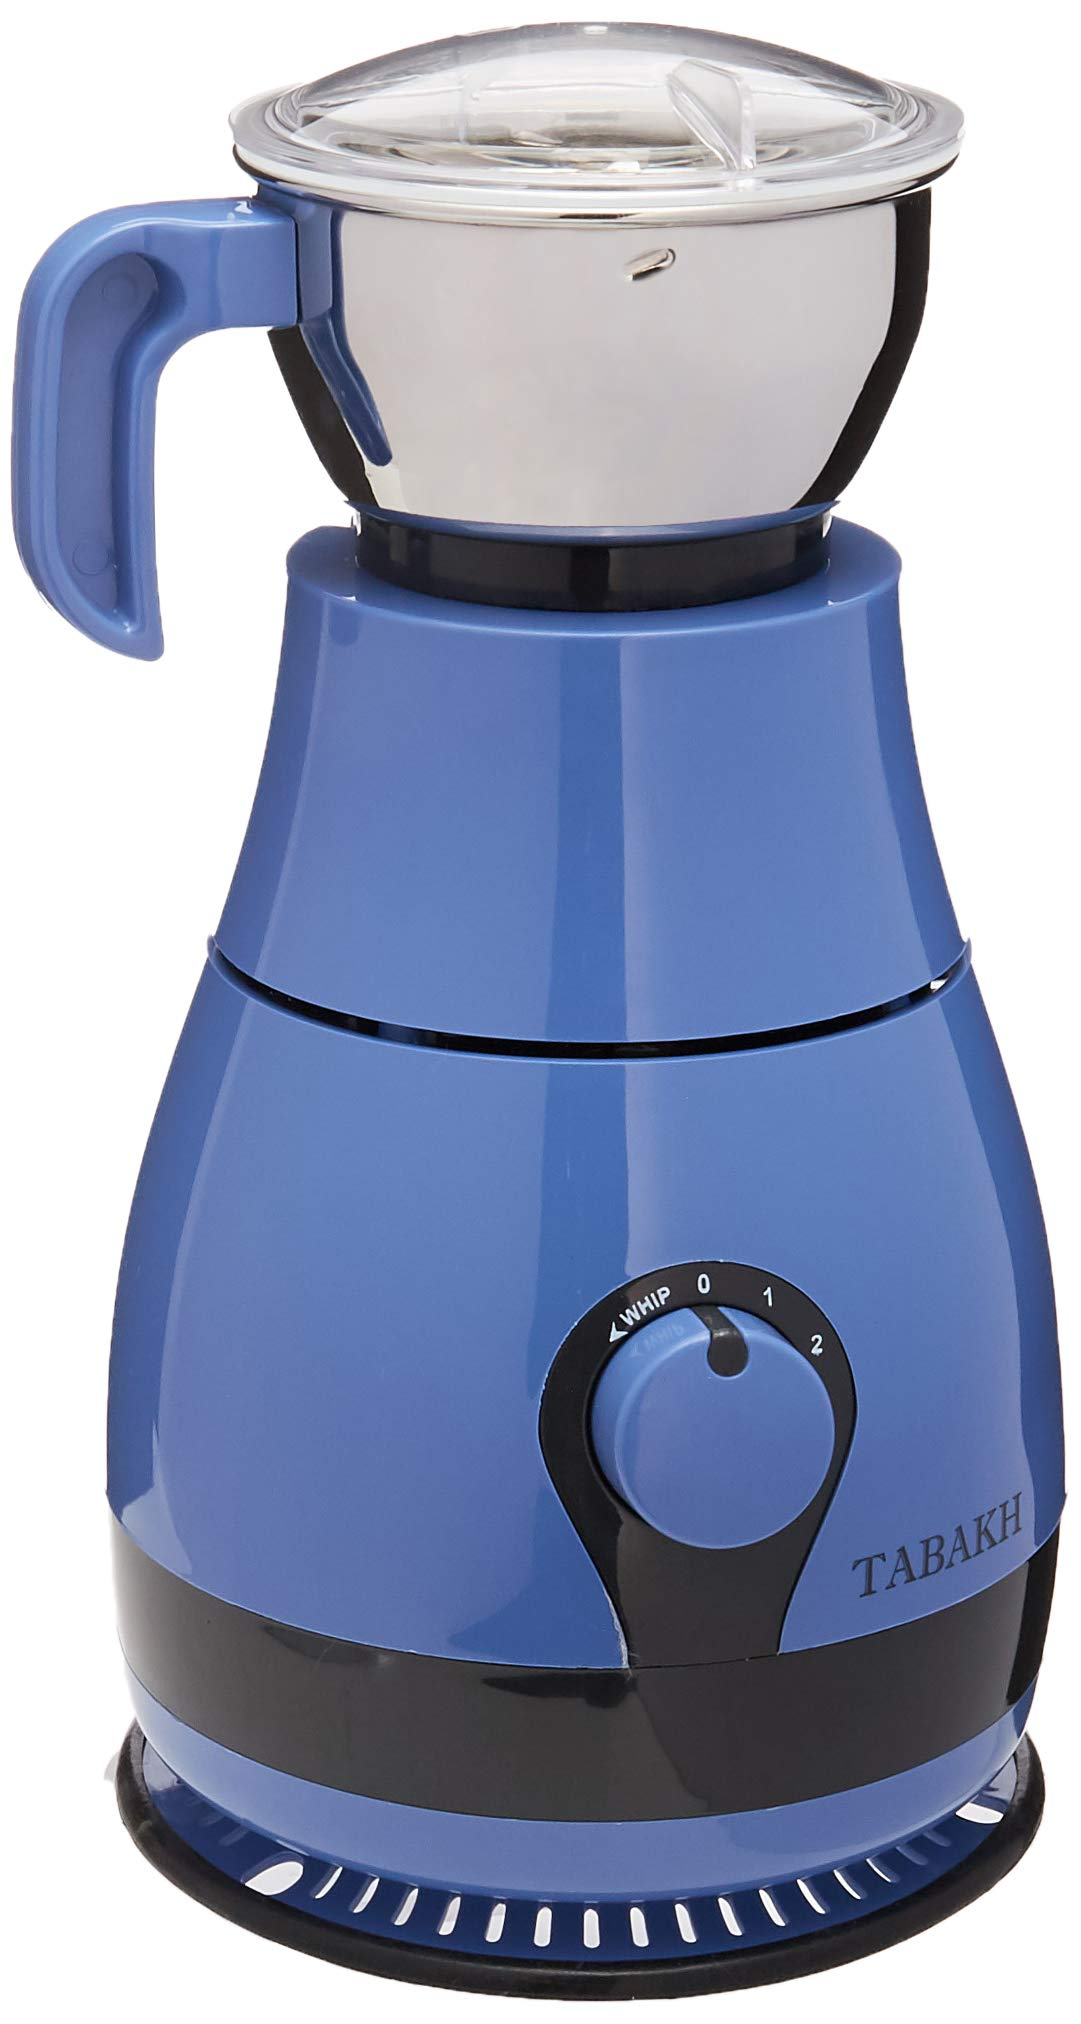 Tabakh Prime Indian Mixer Grinder | 600 Watts | 110-Volts by Tabakh